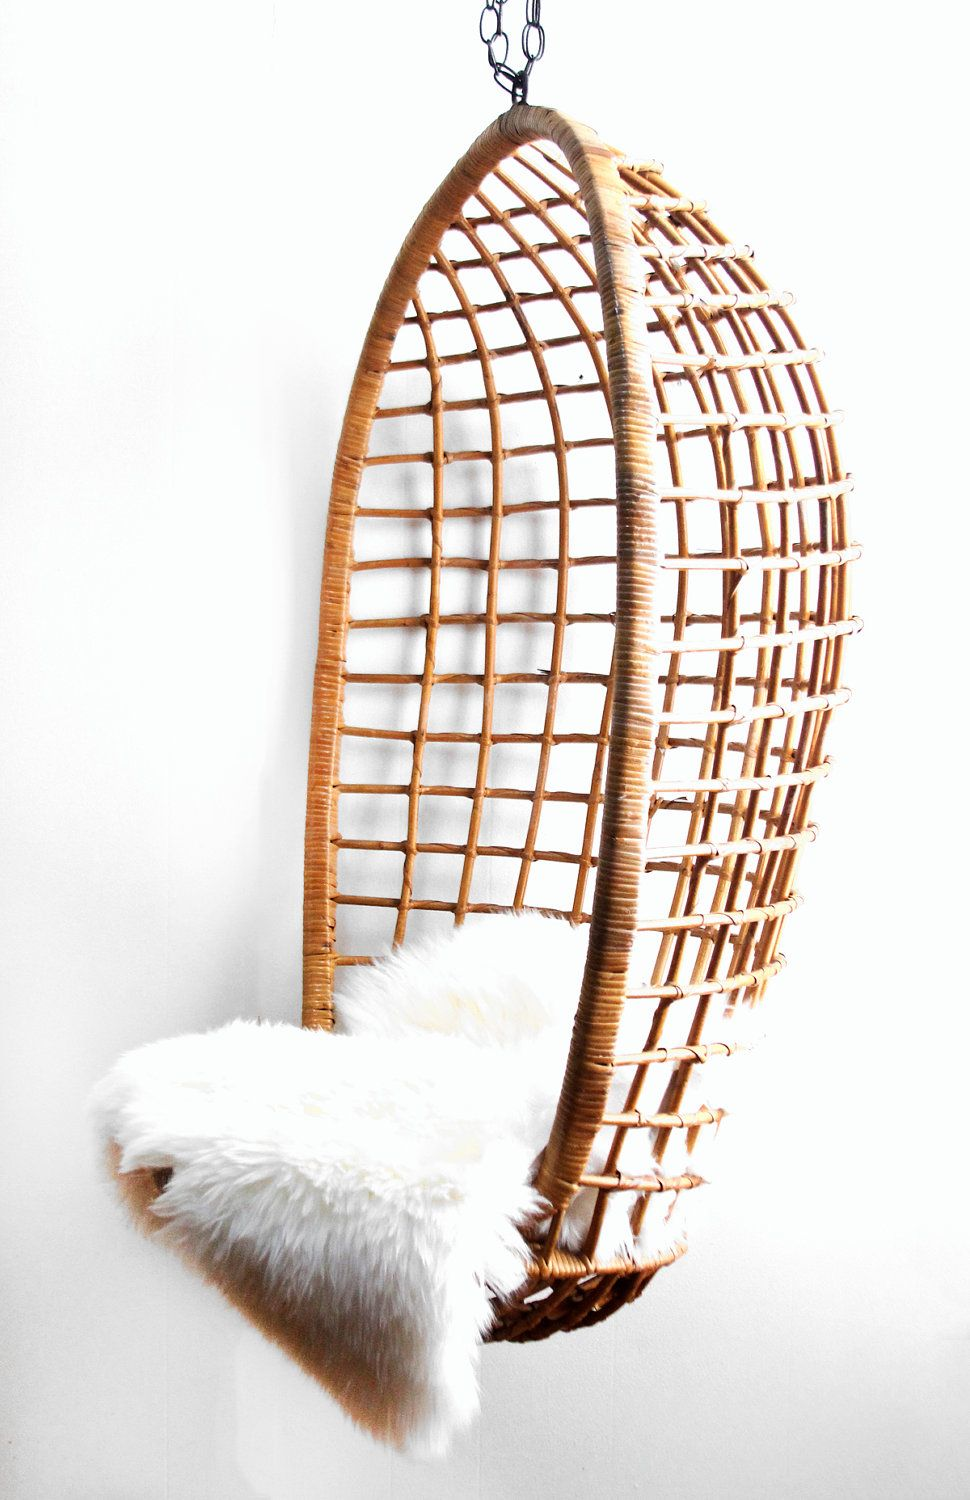 Hanging Rattan Chair Telescope Directors Chairs With Fluffy Cushion For Charming Outdoor And Indoor Lounge Area Impressive Modern Furniture Beautiful Wonderful